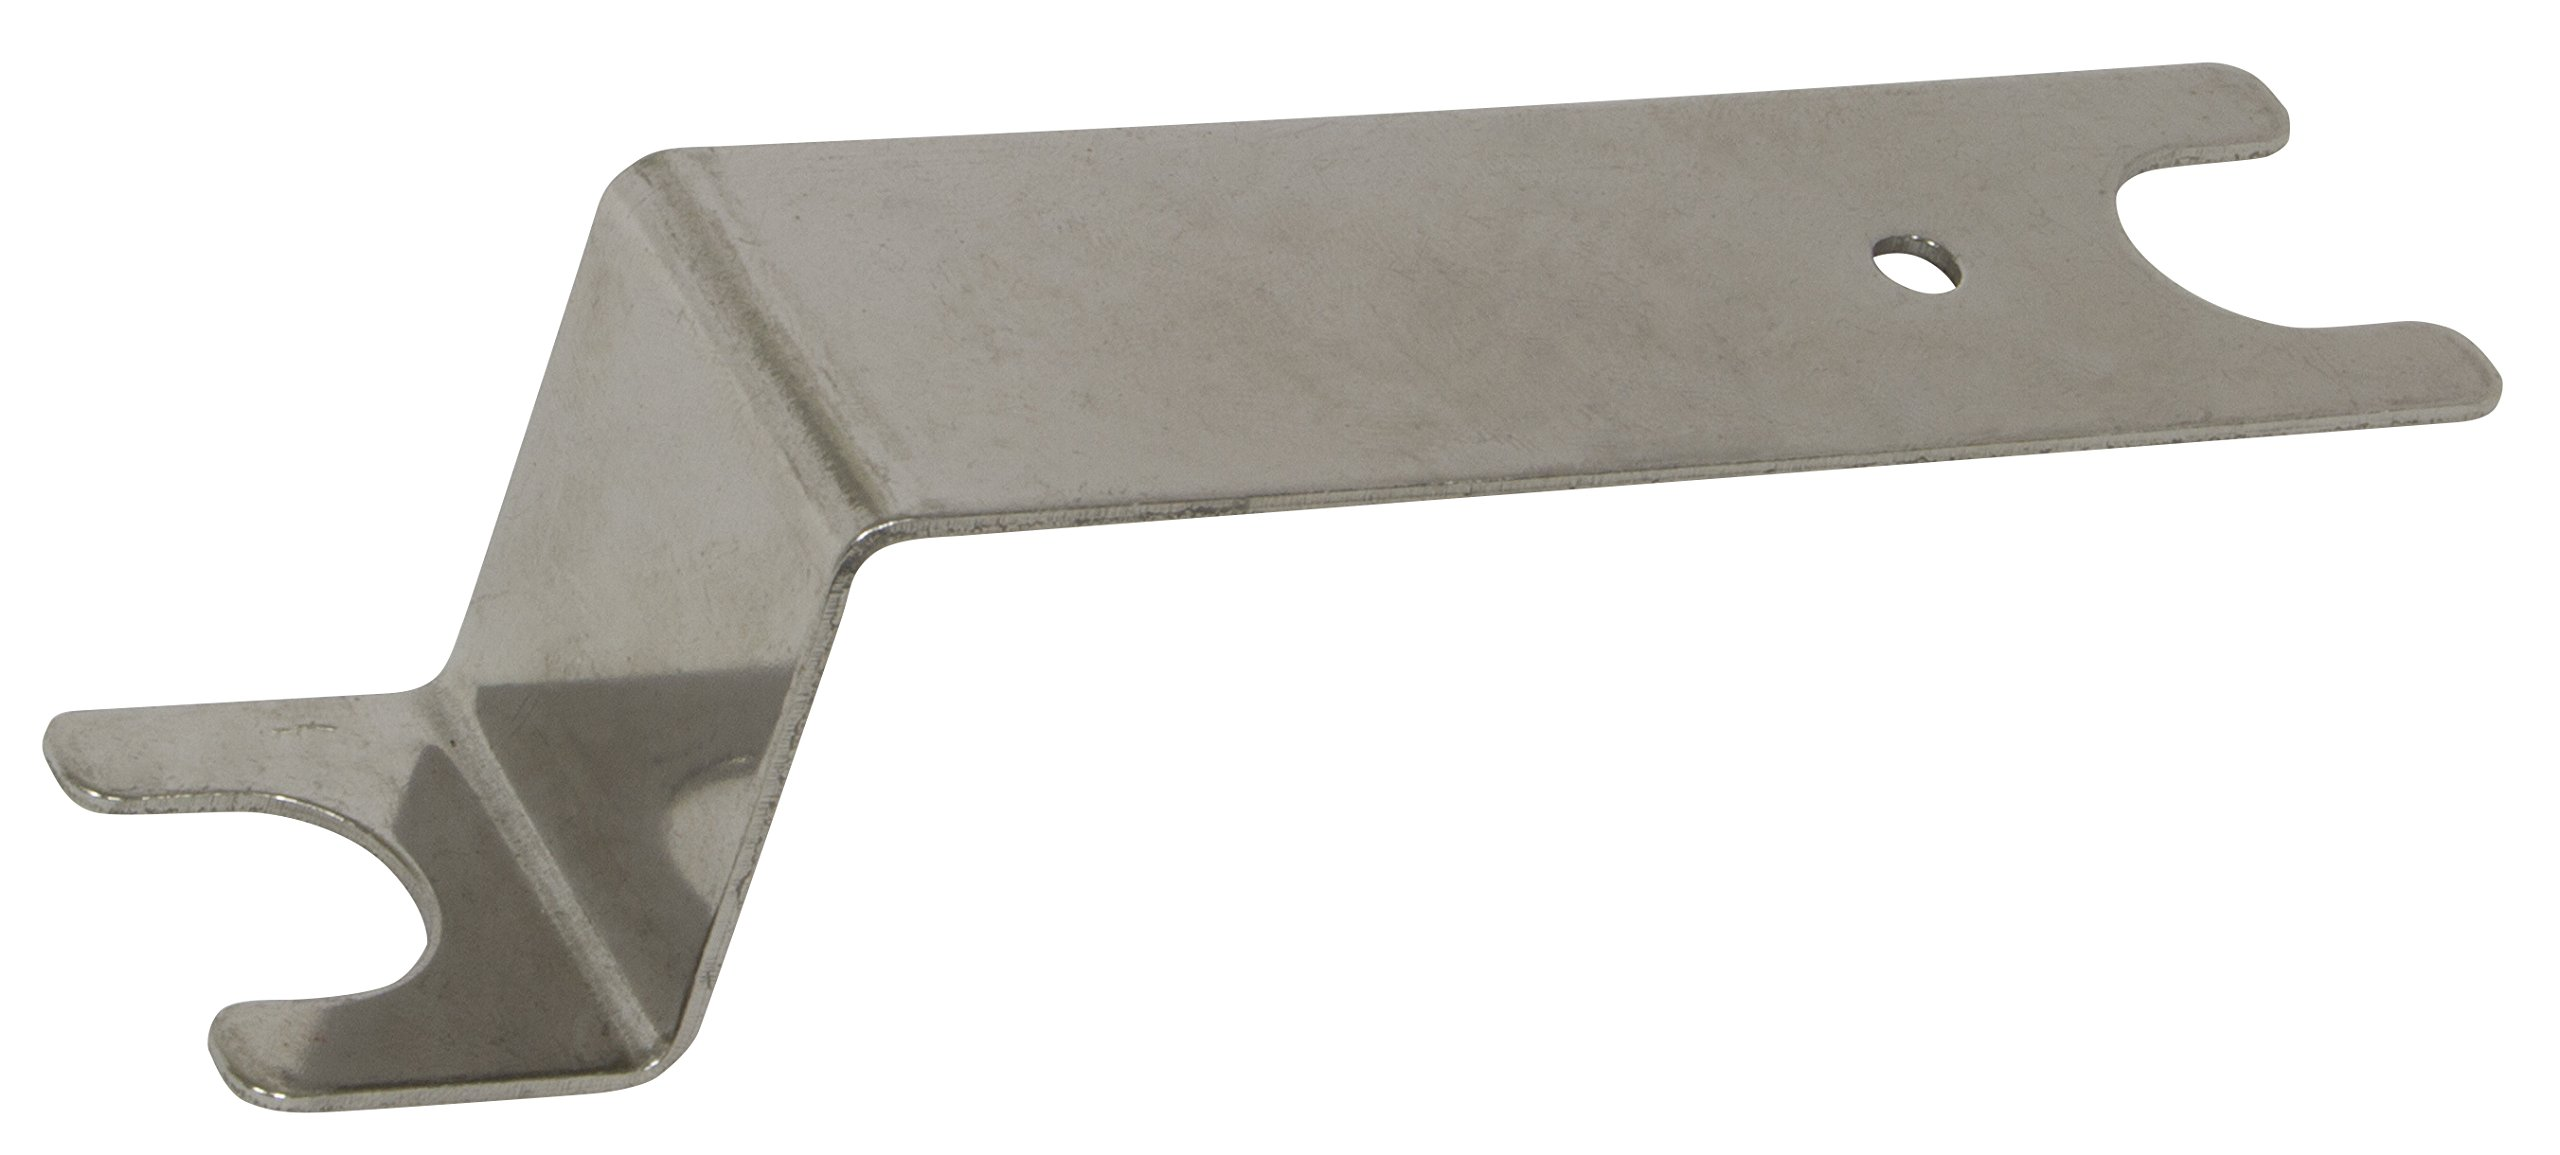 Lisle 39810 Hydraulic Clutch Line Disconnect Tool by Lisle (Image #1)